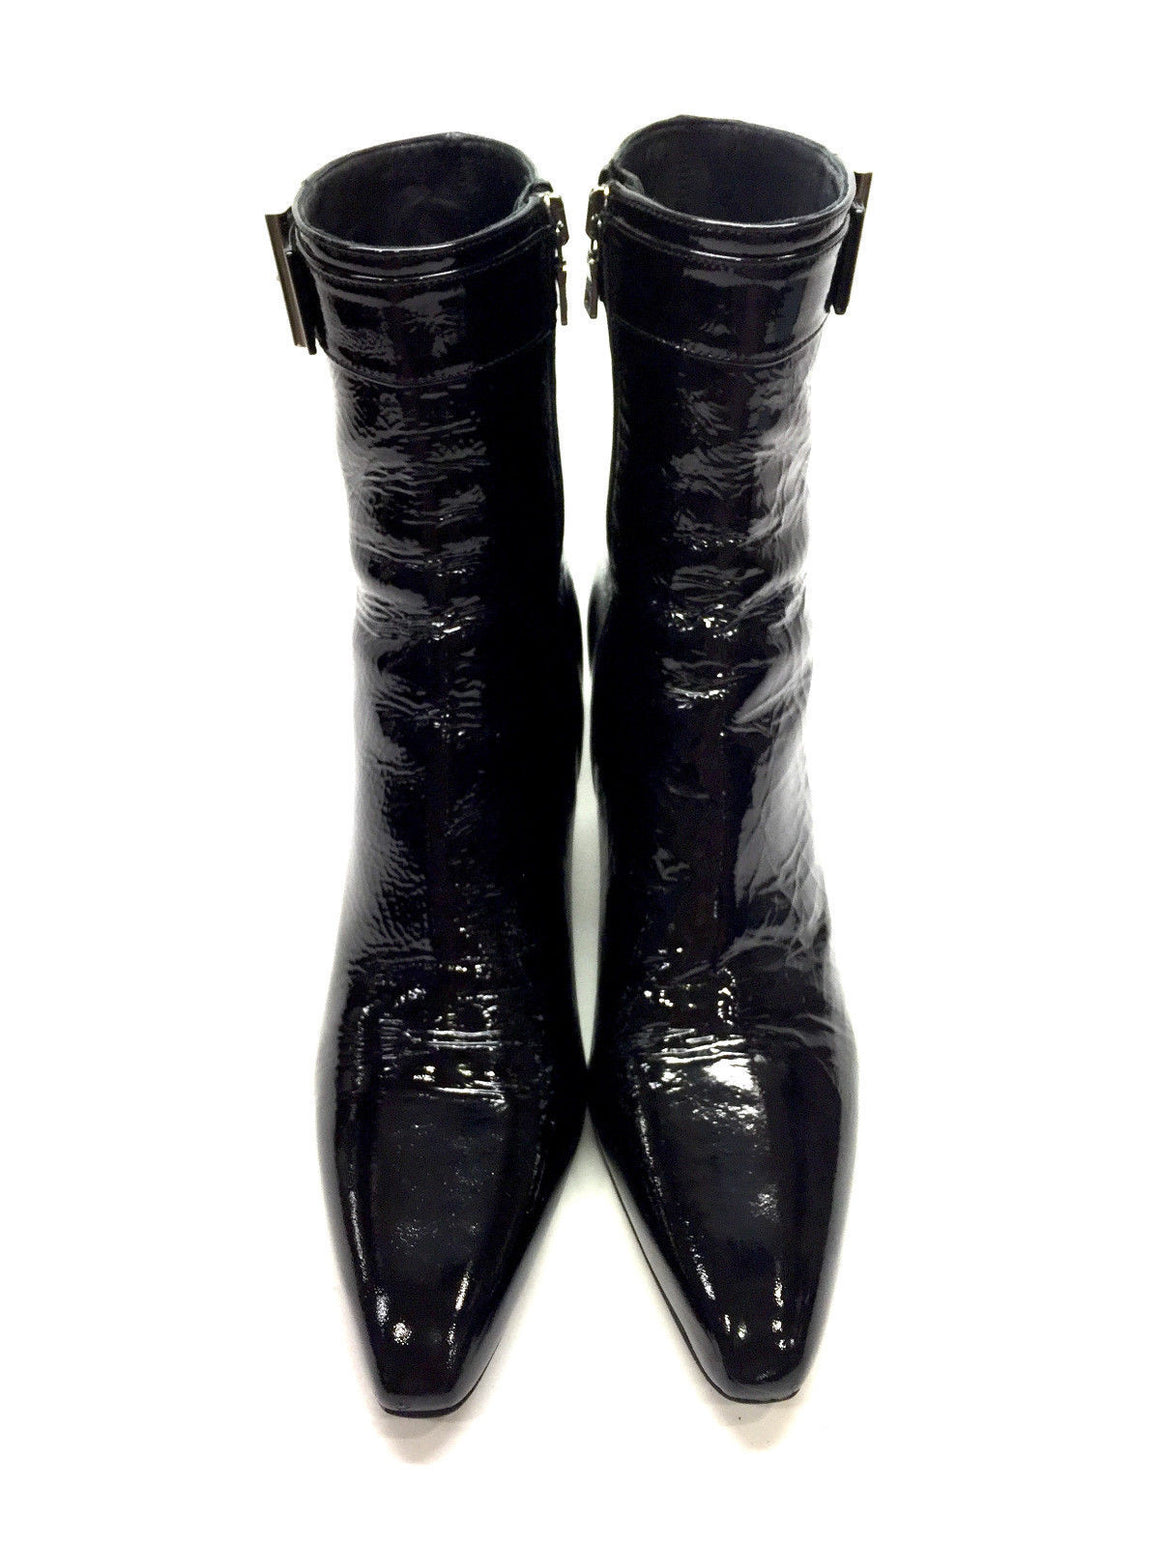 bisbiz.com PRADA Black Patent Leather Silvertone Logo Buckle Slim-Heels Ankle Boots/Booties Size: 38 / 8 - Bis Luxury Resale